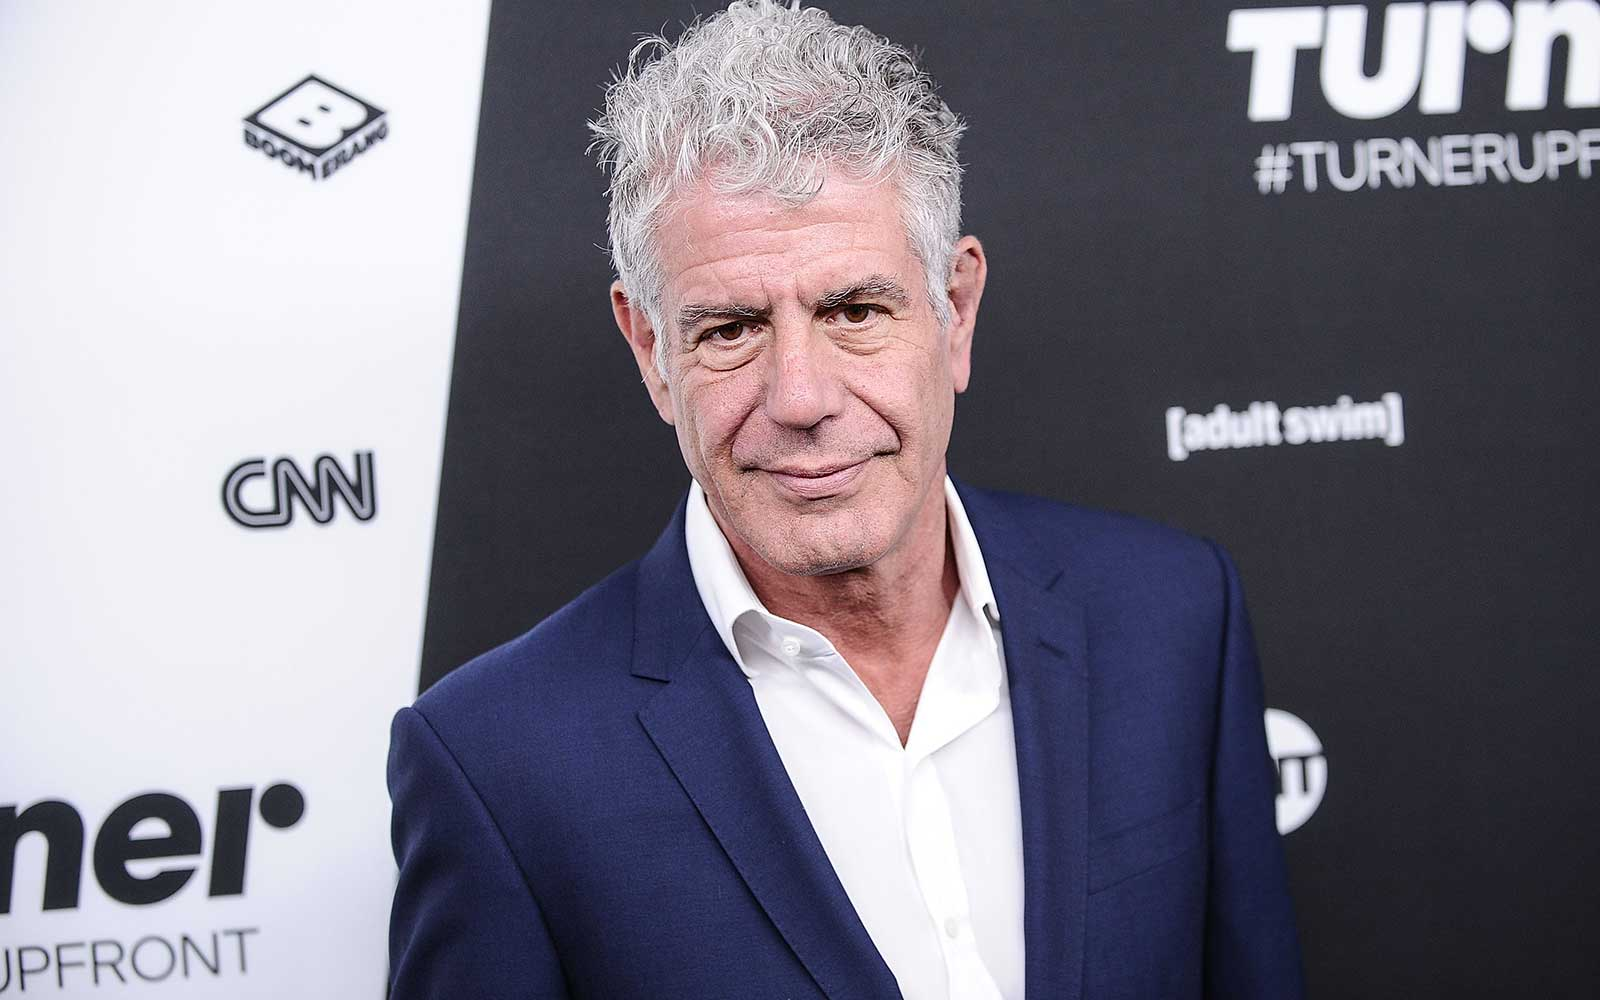 The Best Seat on the Airplane, According to Anthony Bourdain